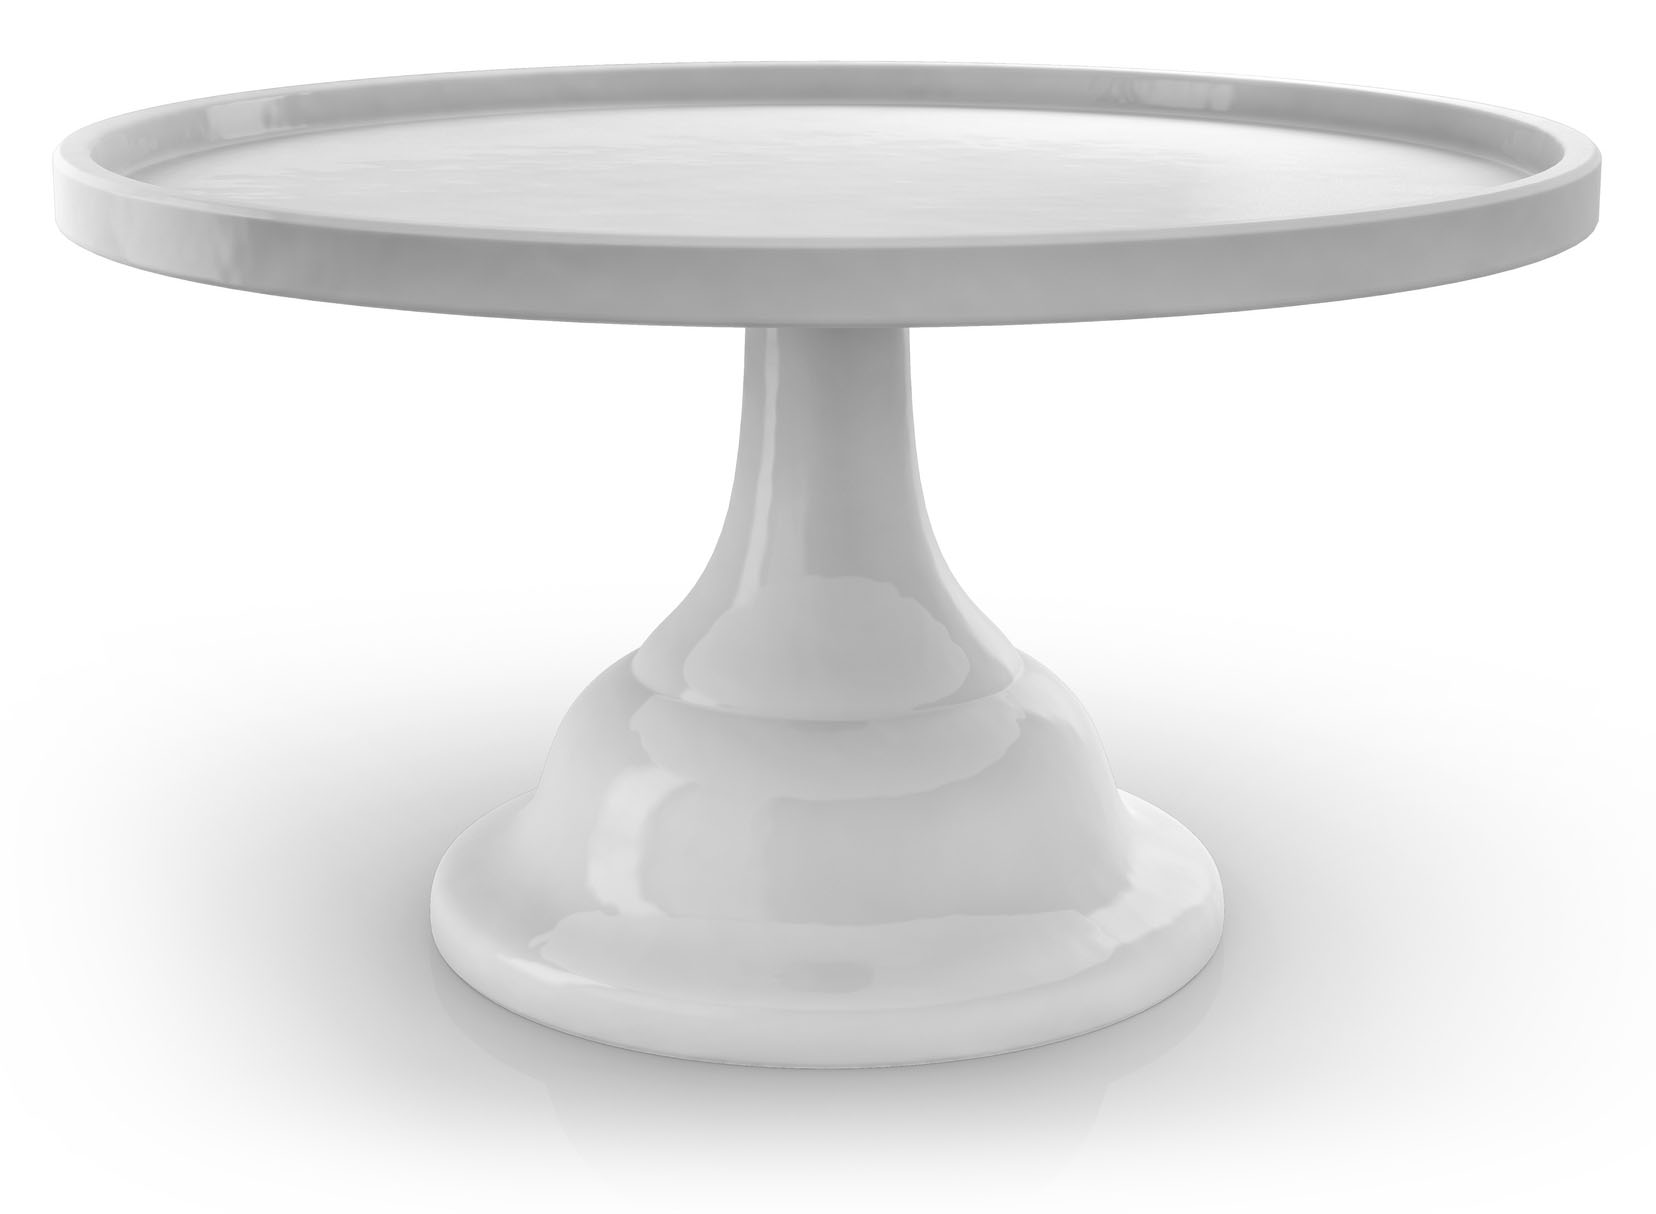 Empty Cake Cookie Stand on White Background